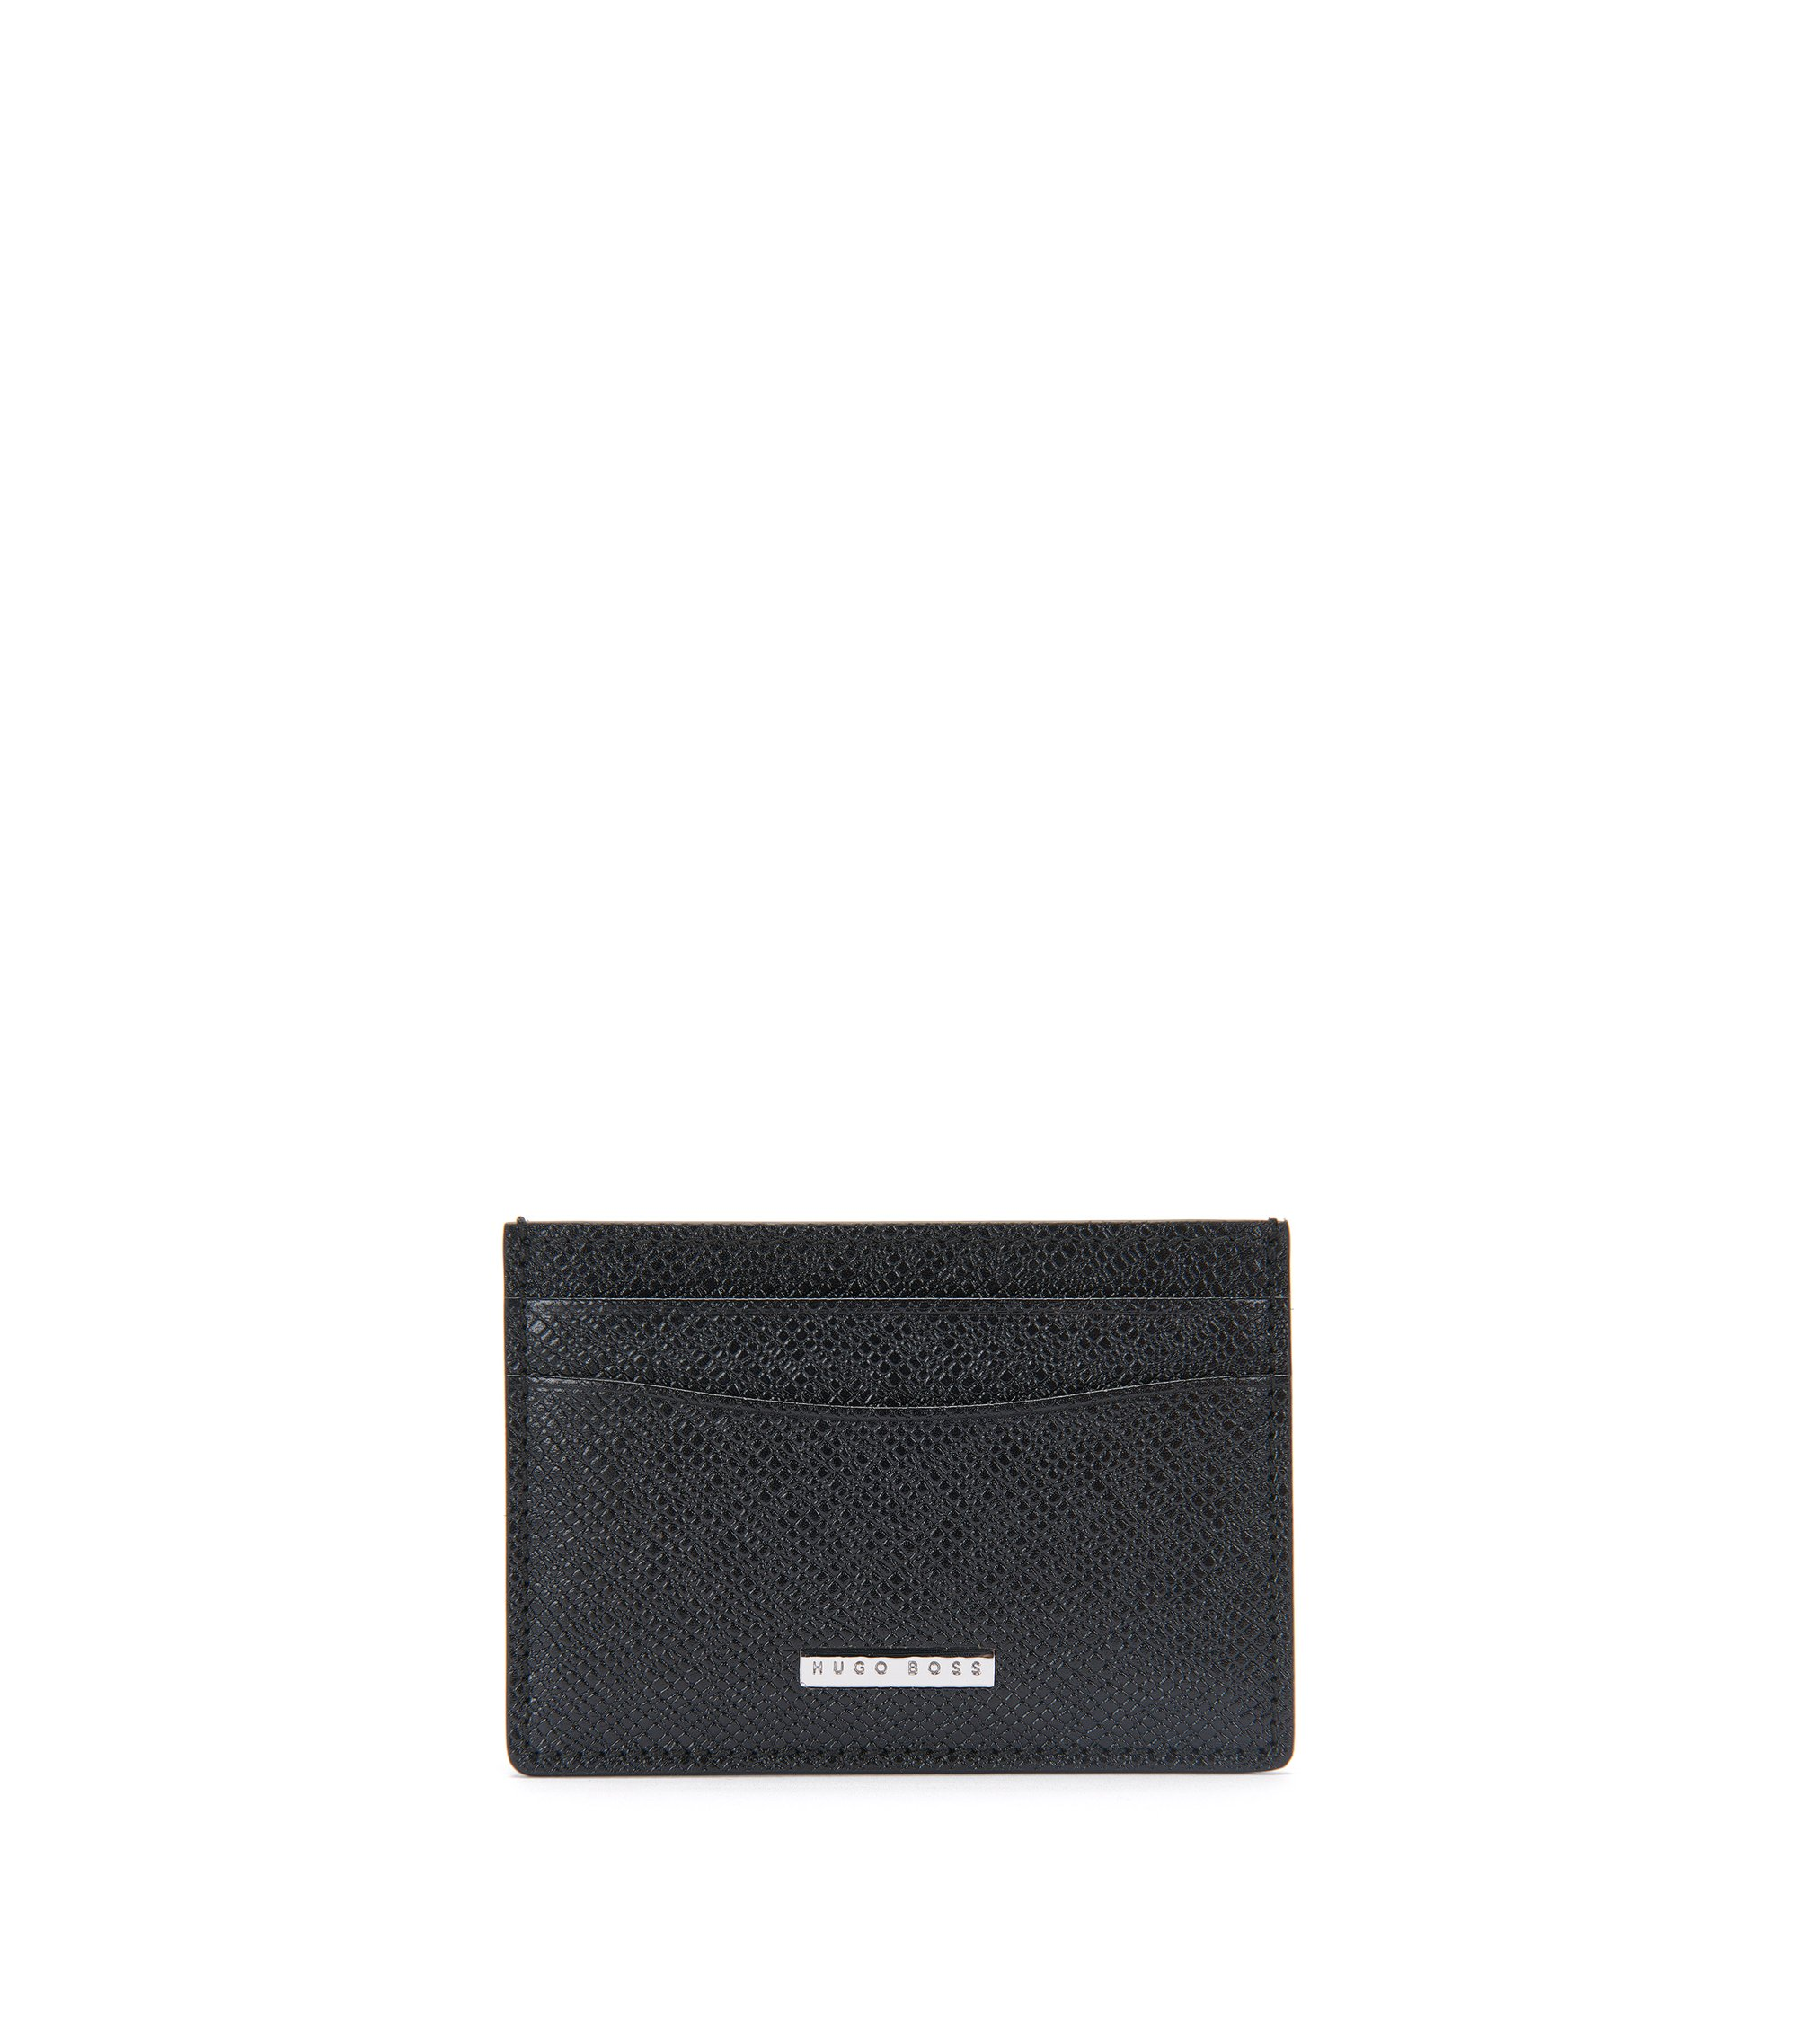 'Signature CC Window' | Calfskin Card Case with ID Window, Black